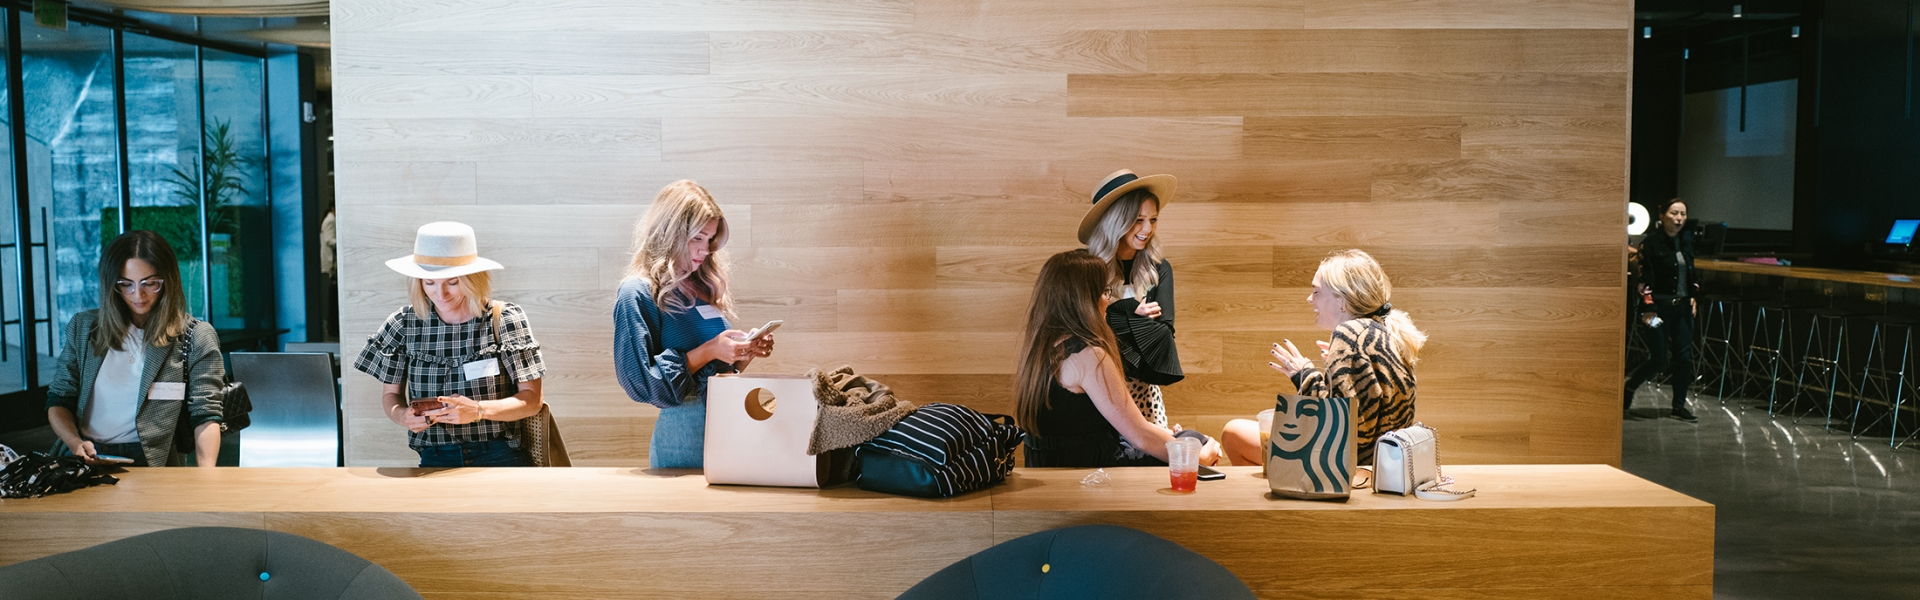 group of women gather in lobby to chat and work